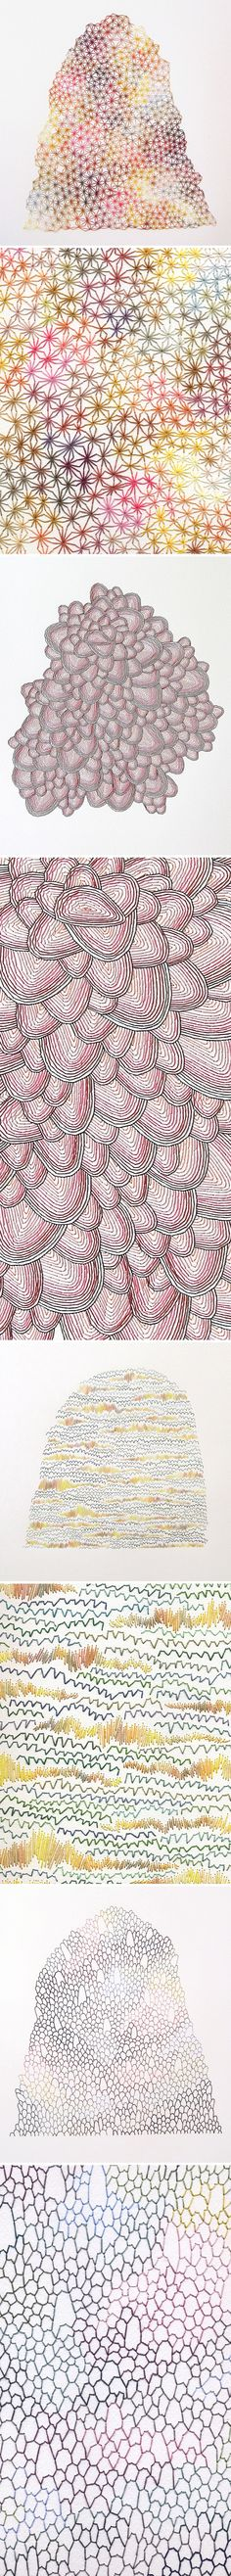 emily barletta - embroidery on paper